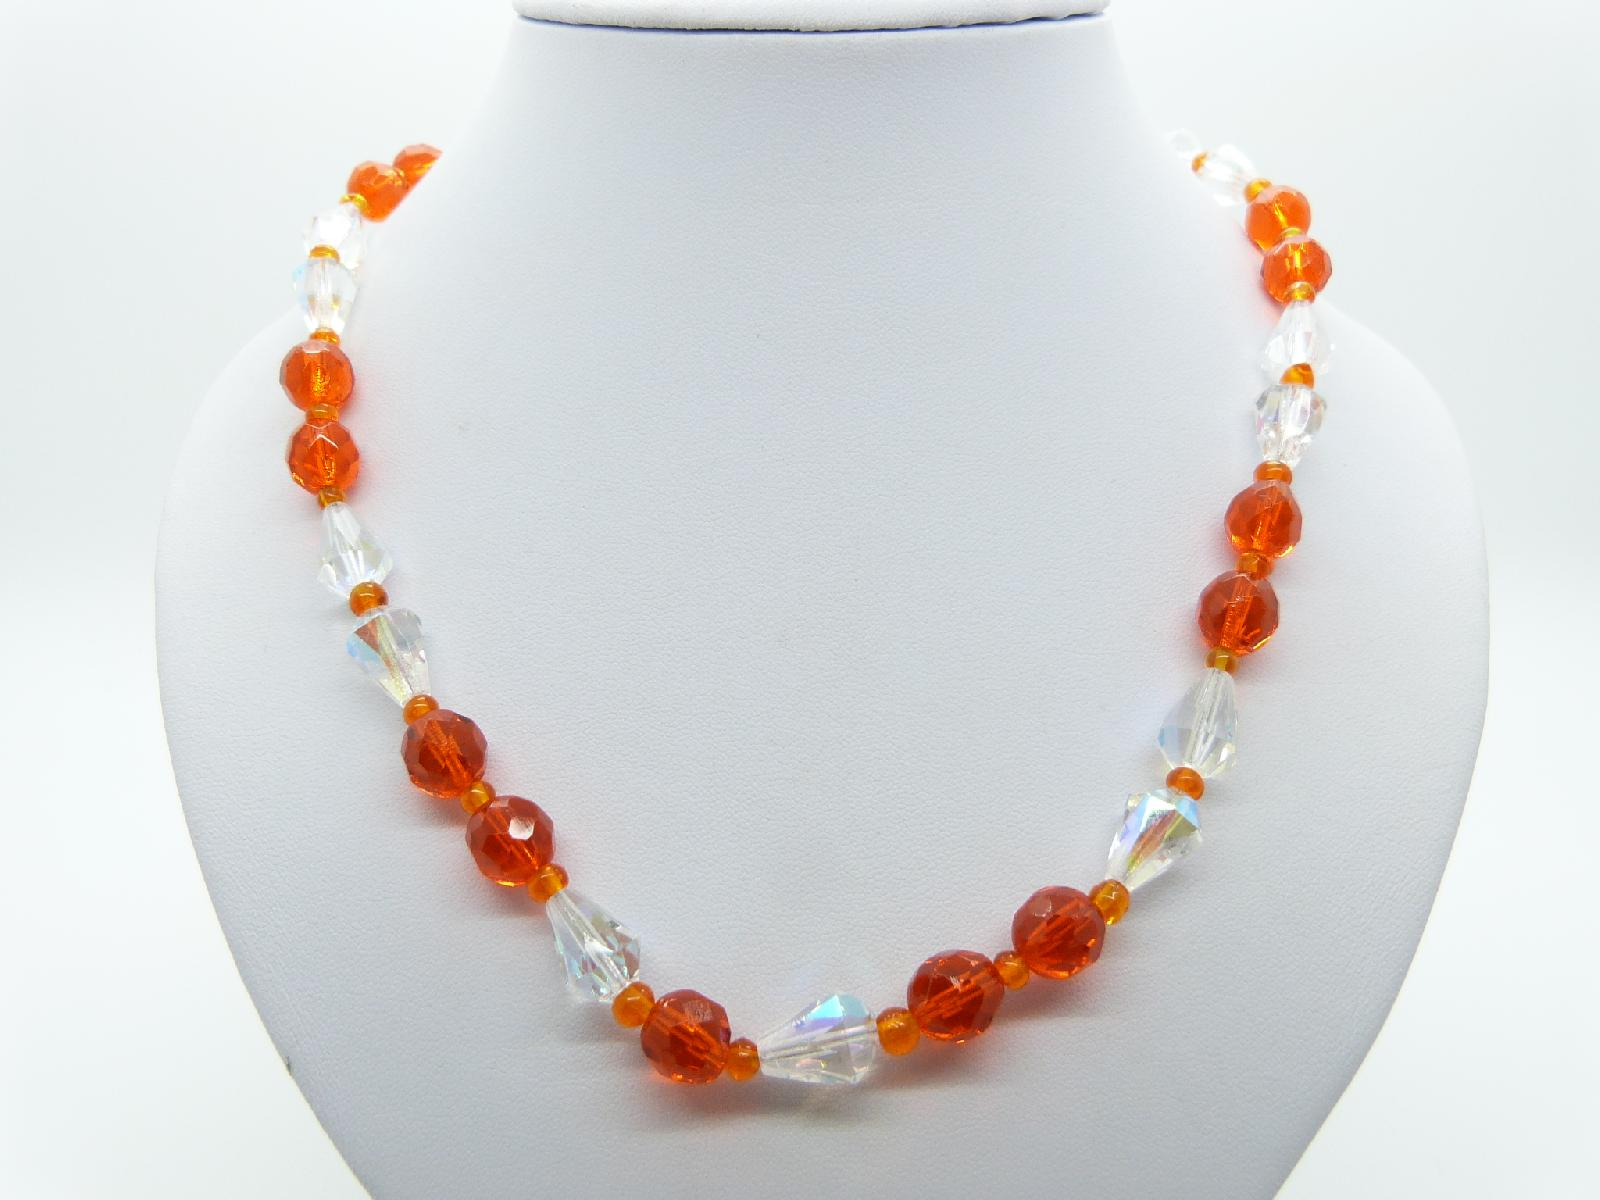 Vintage 50s Orange and AB Crystal Glass Bead Necklace Pretty Diamante Clasp 53cms